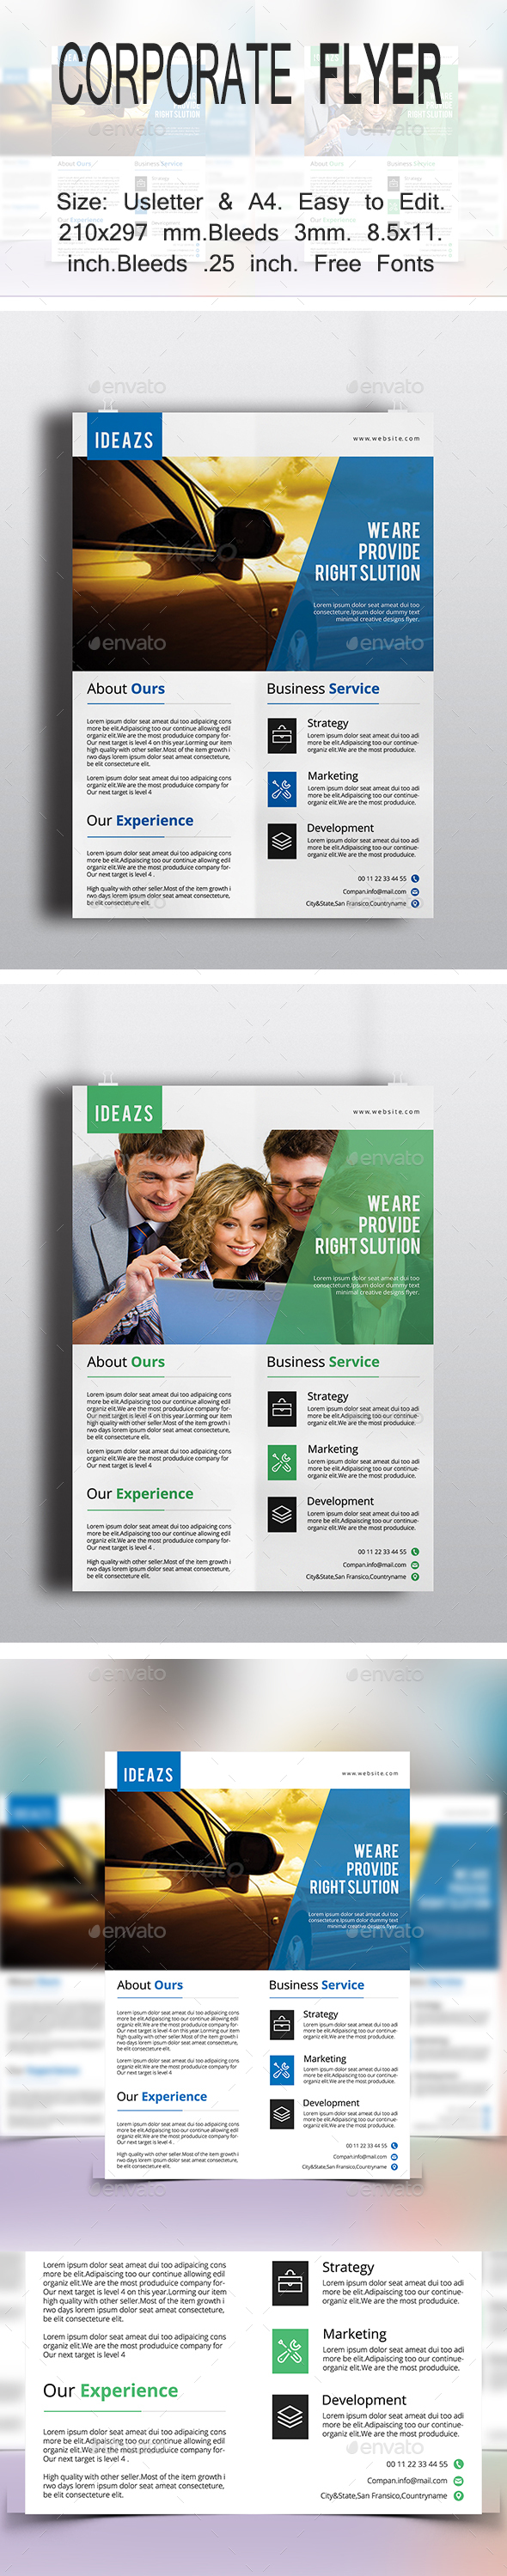 Corporate Flyer V06 - Corporate Flyers